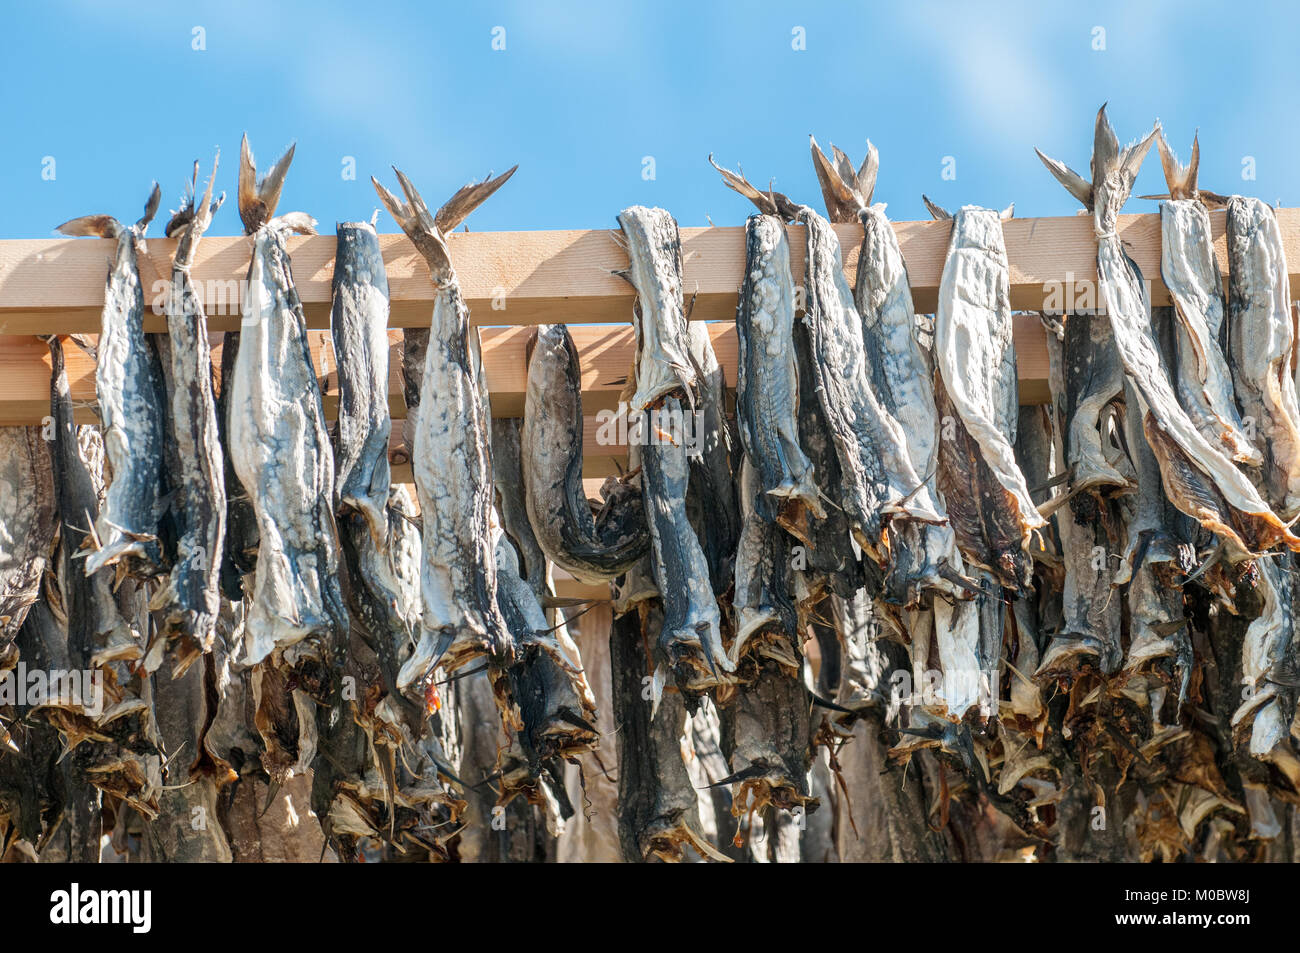 Typical drying flake for Stockfish in Lofoten, Northern Norway. Drying food is the world's oldest preservation - Stock Image